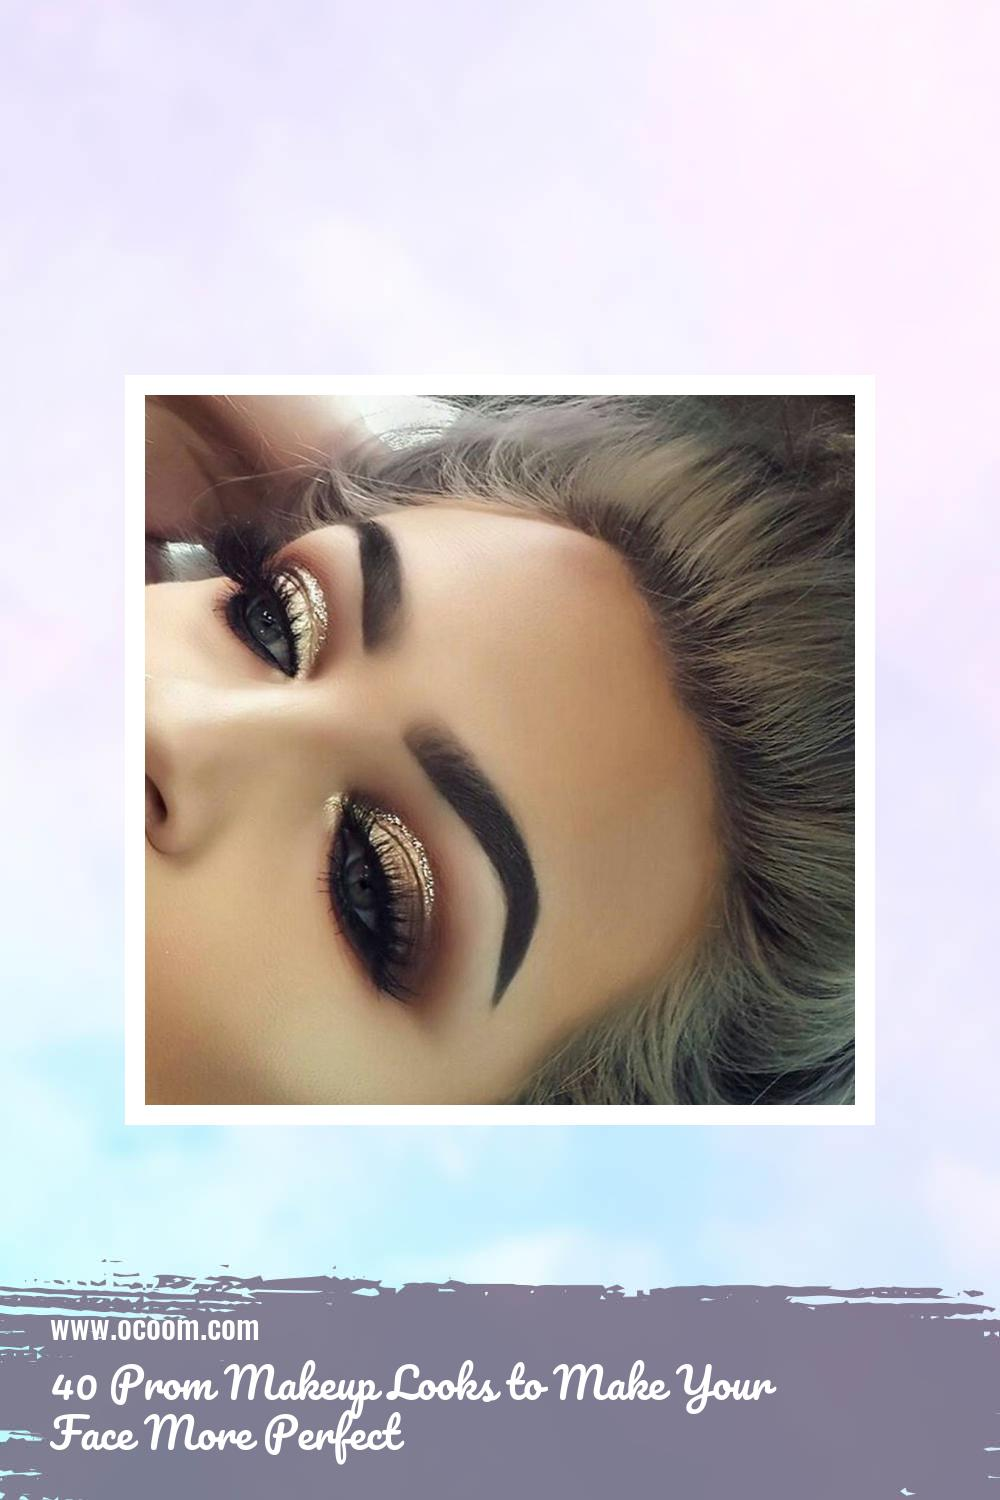 40 Prom Makeup Looks to Make Your Face More Perfect 5